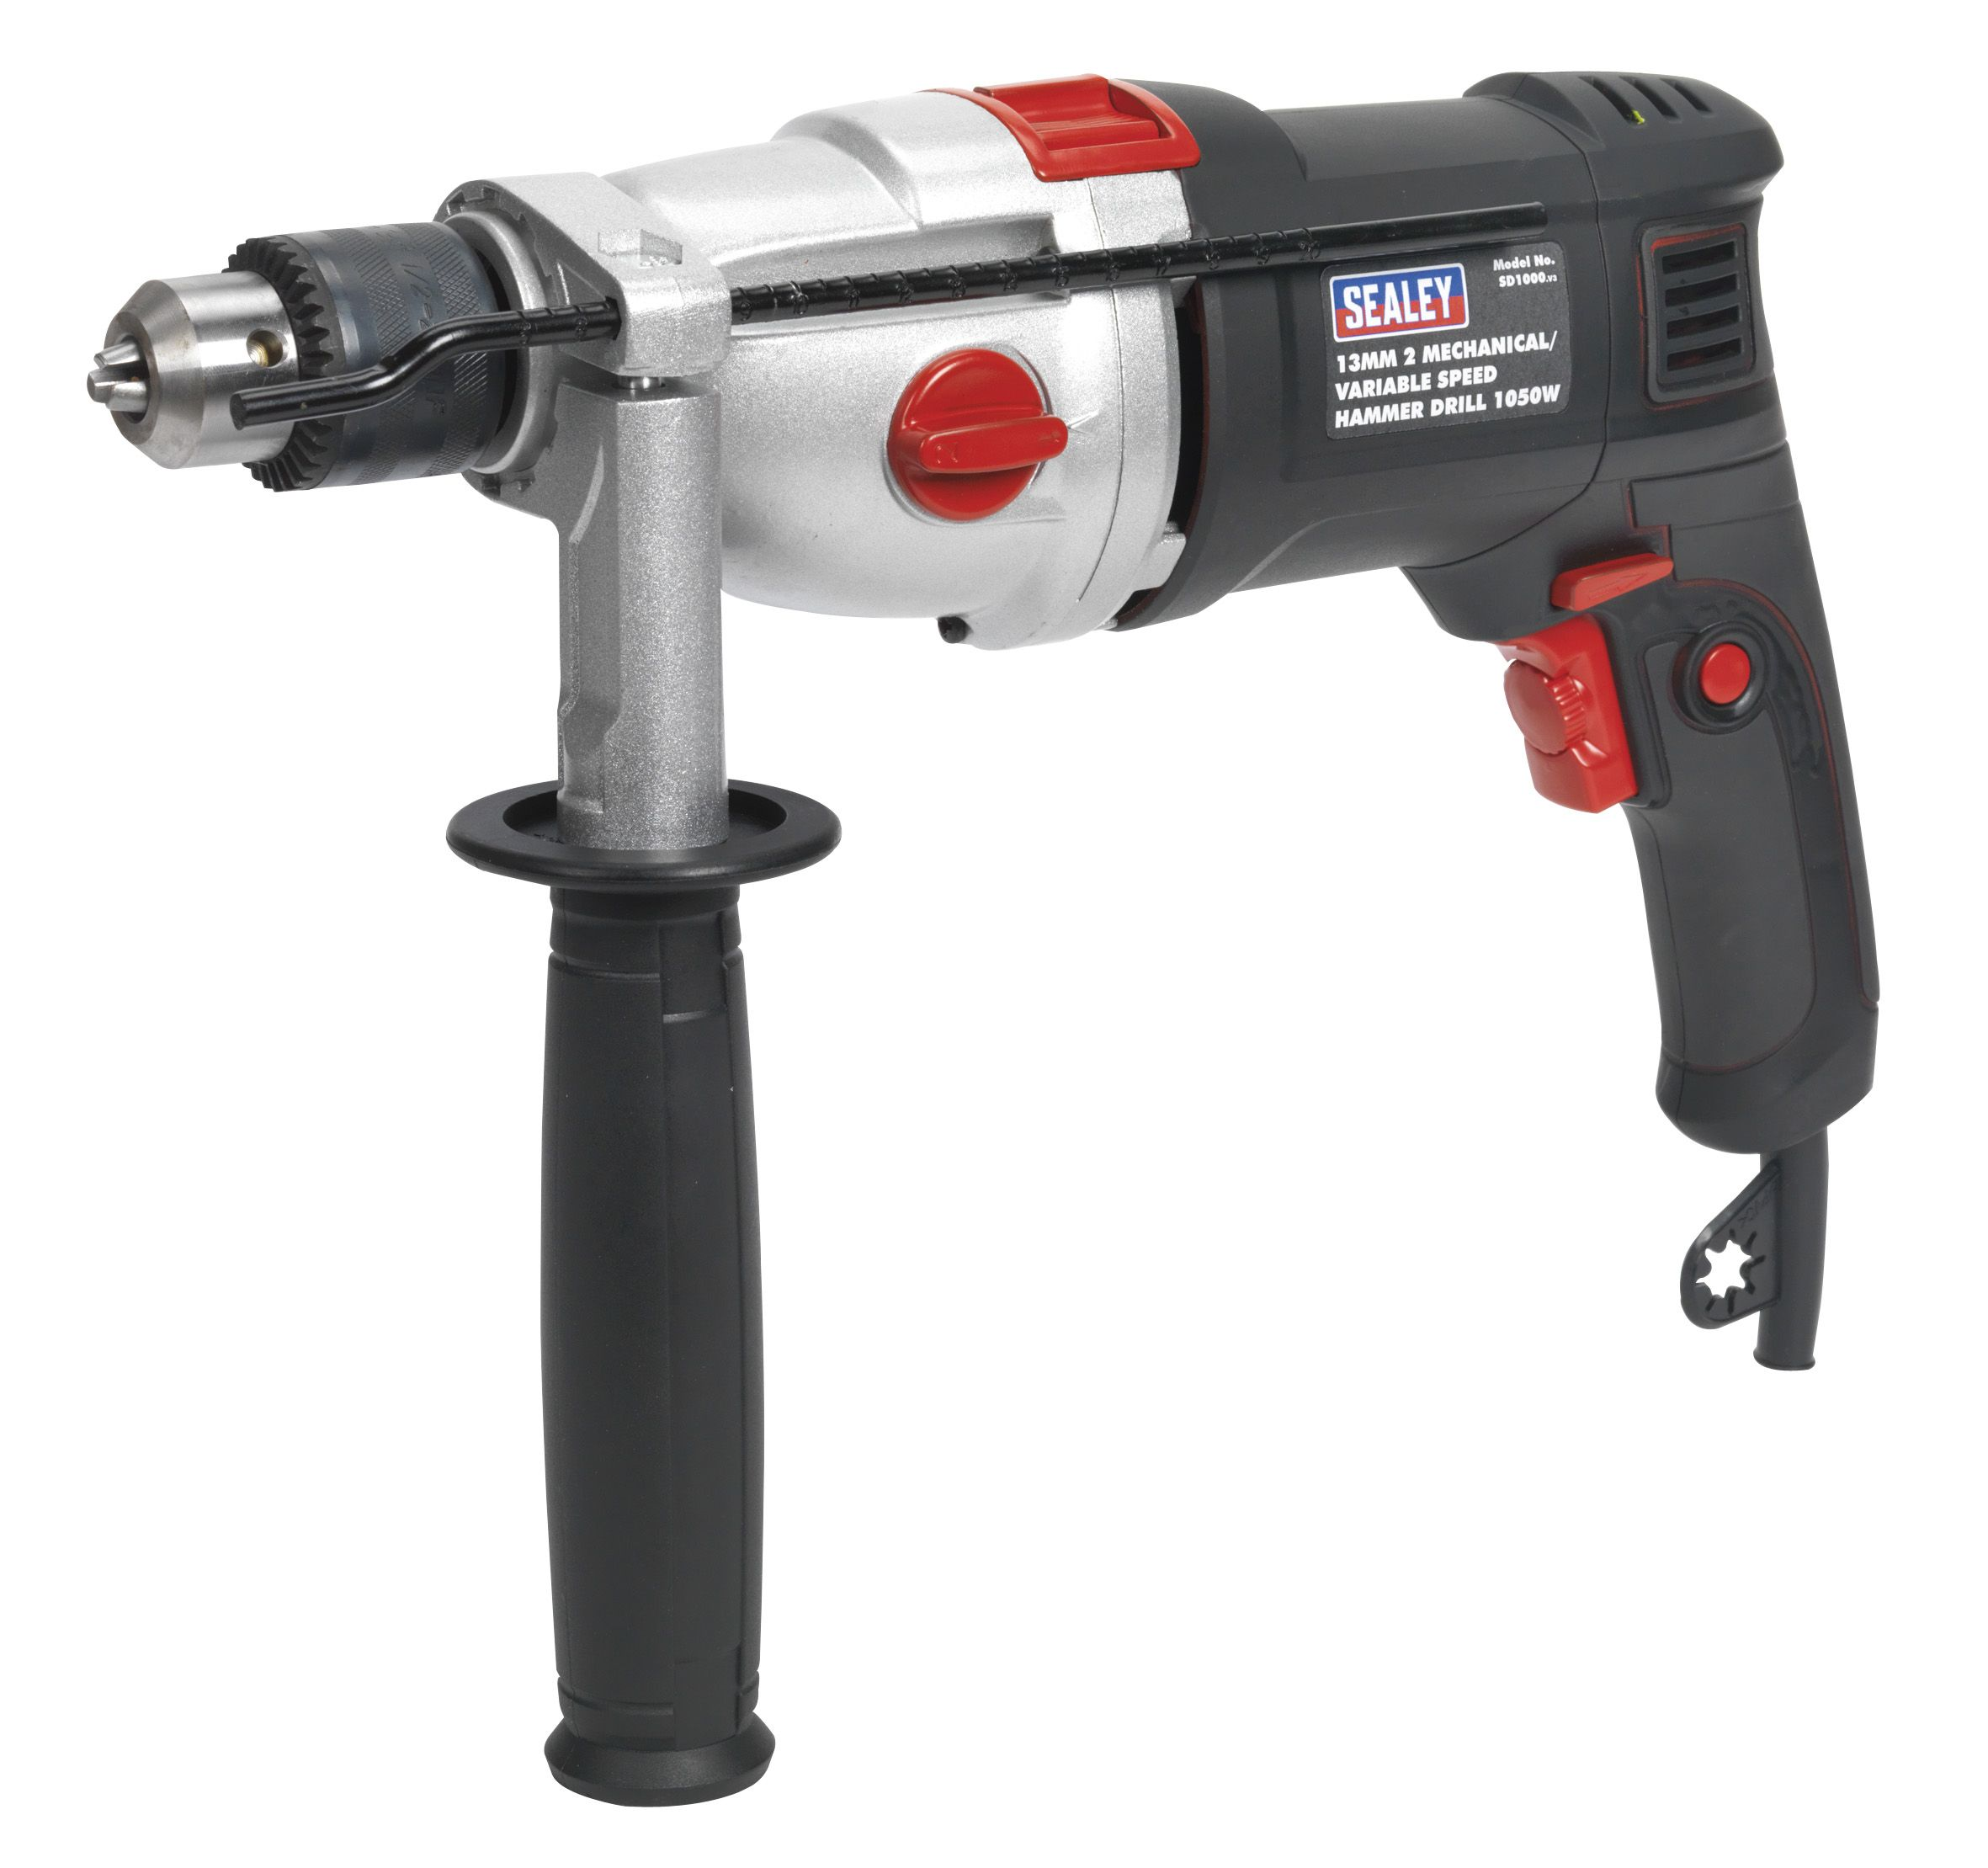 Sealey Hammer Drill 13mm 2 Mechanical/Variable Speed 1050W/230V